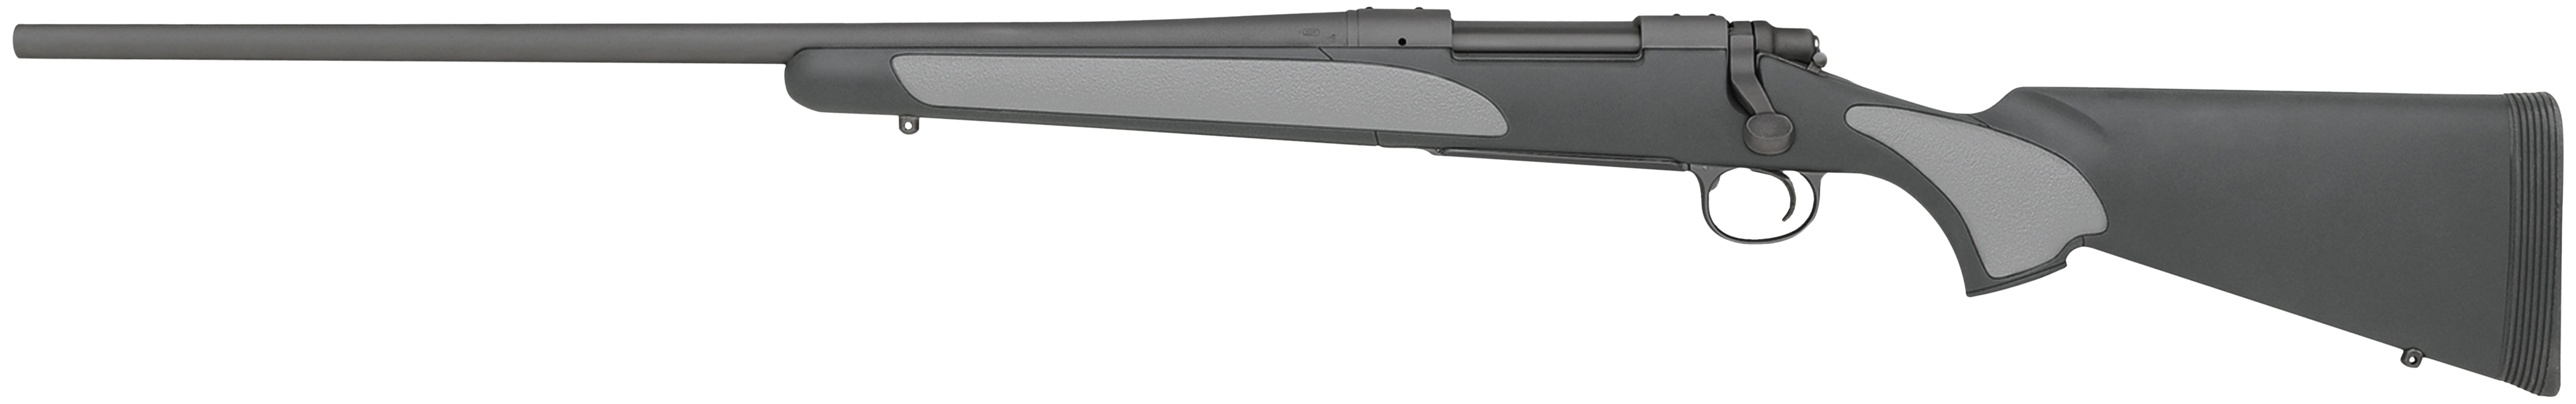 Remington 700 SPS 7mm Rem Mag 26